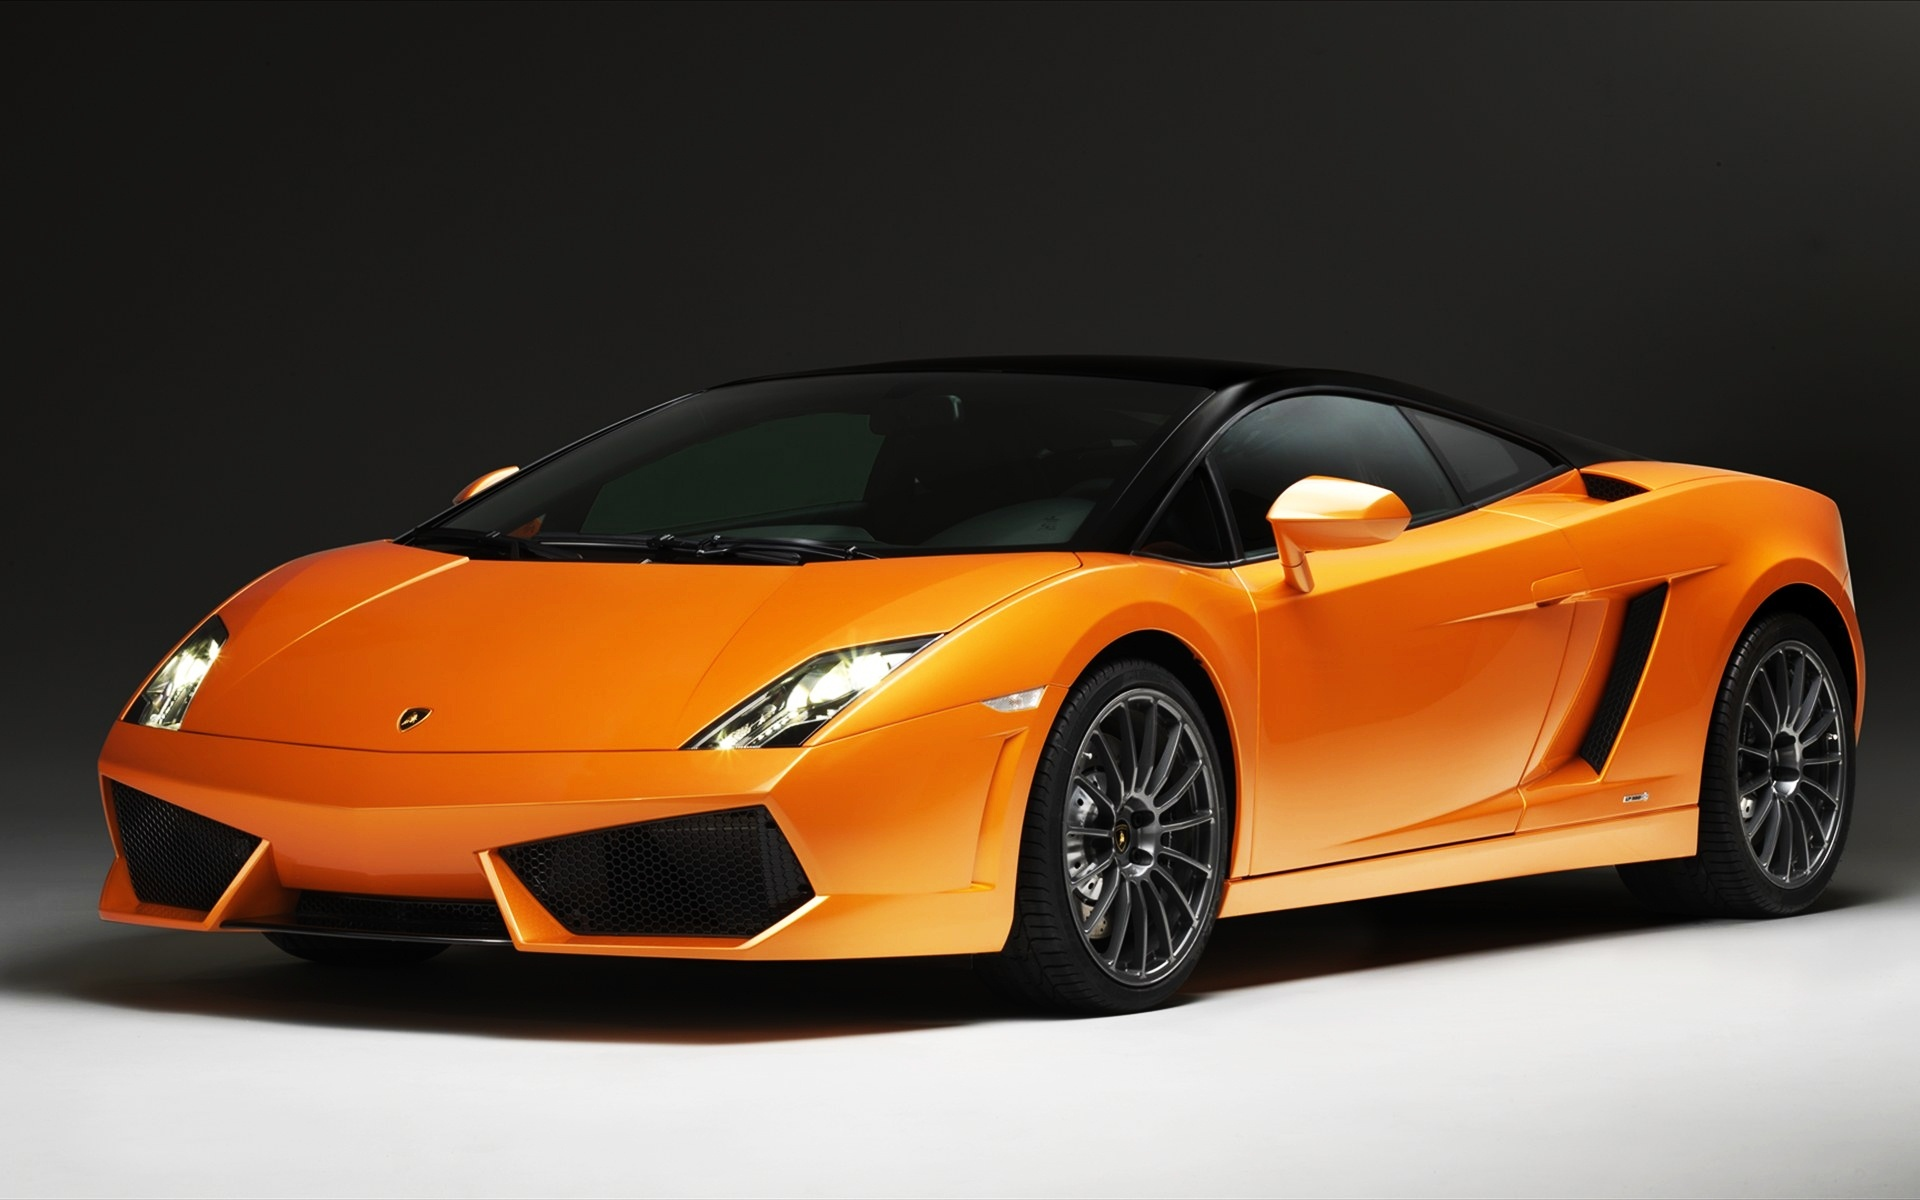 Lamborghini Gallardo Bicolore 2011 Wallpapers HD Desktop Wallpapers 1920x1200